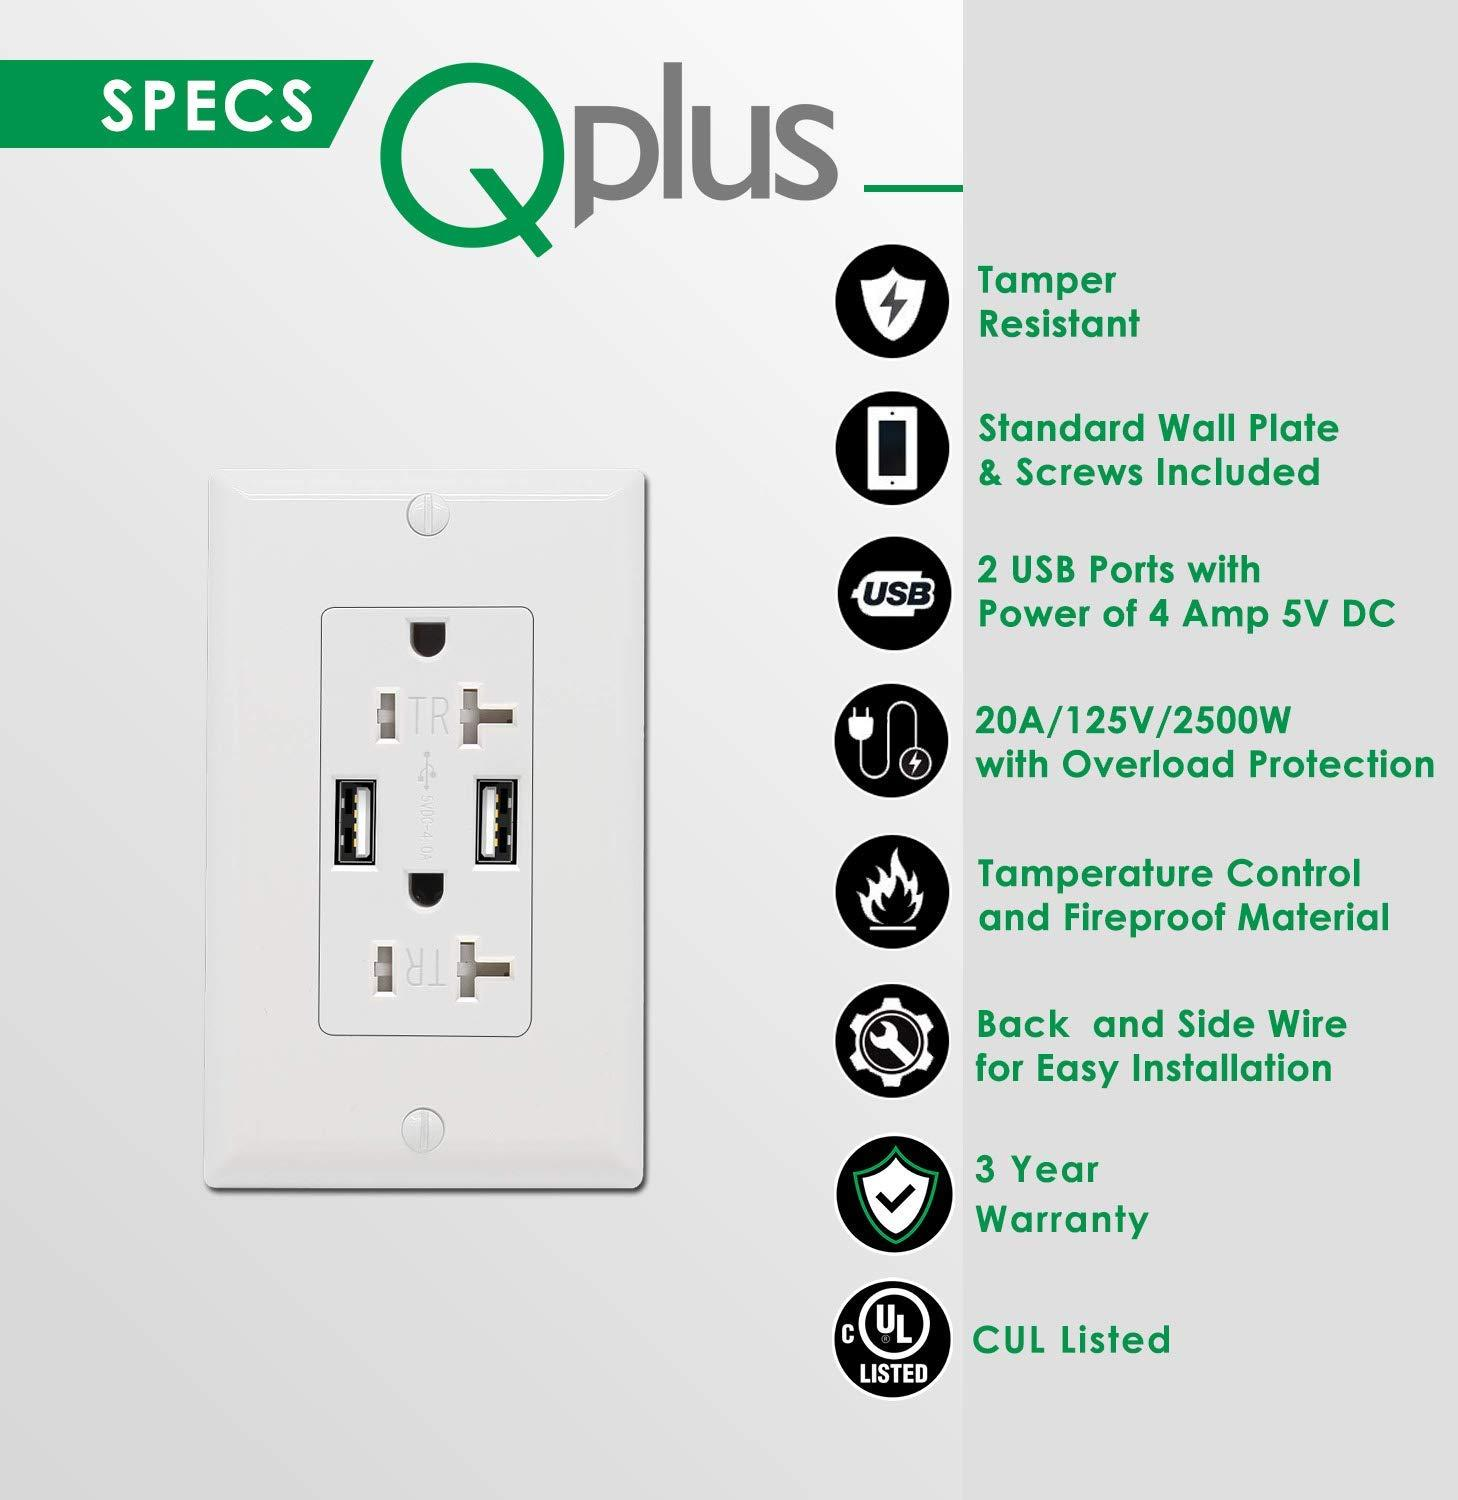 QPLUS 20 Amp USB Wall Receptacle Outlet, Tamper Resistant 2500W - UL Listed (Wall Plates & Screws Included) - QPlus Home - Brighten Your Life